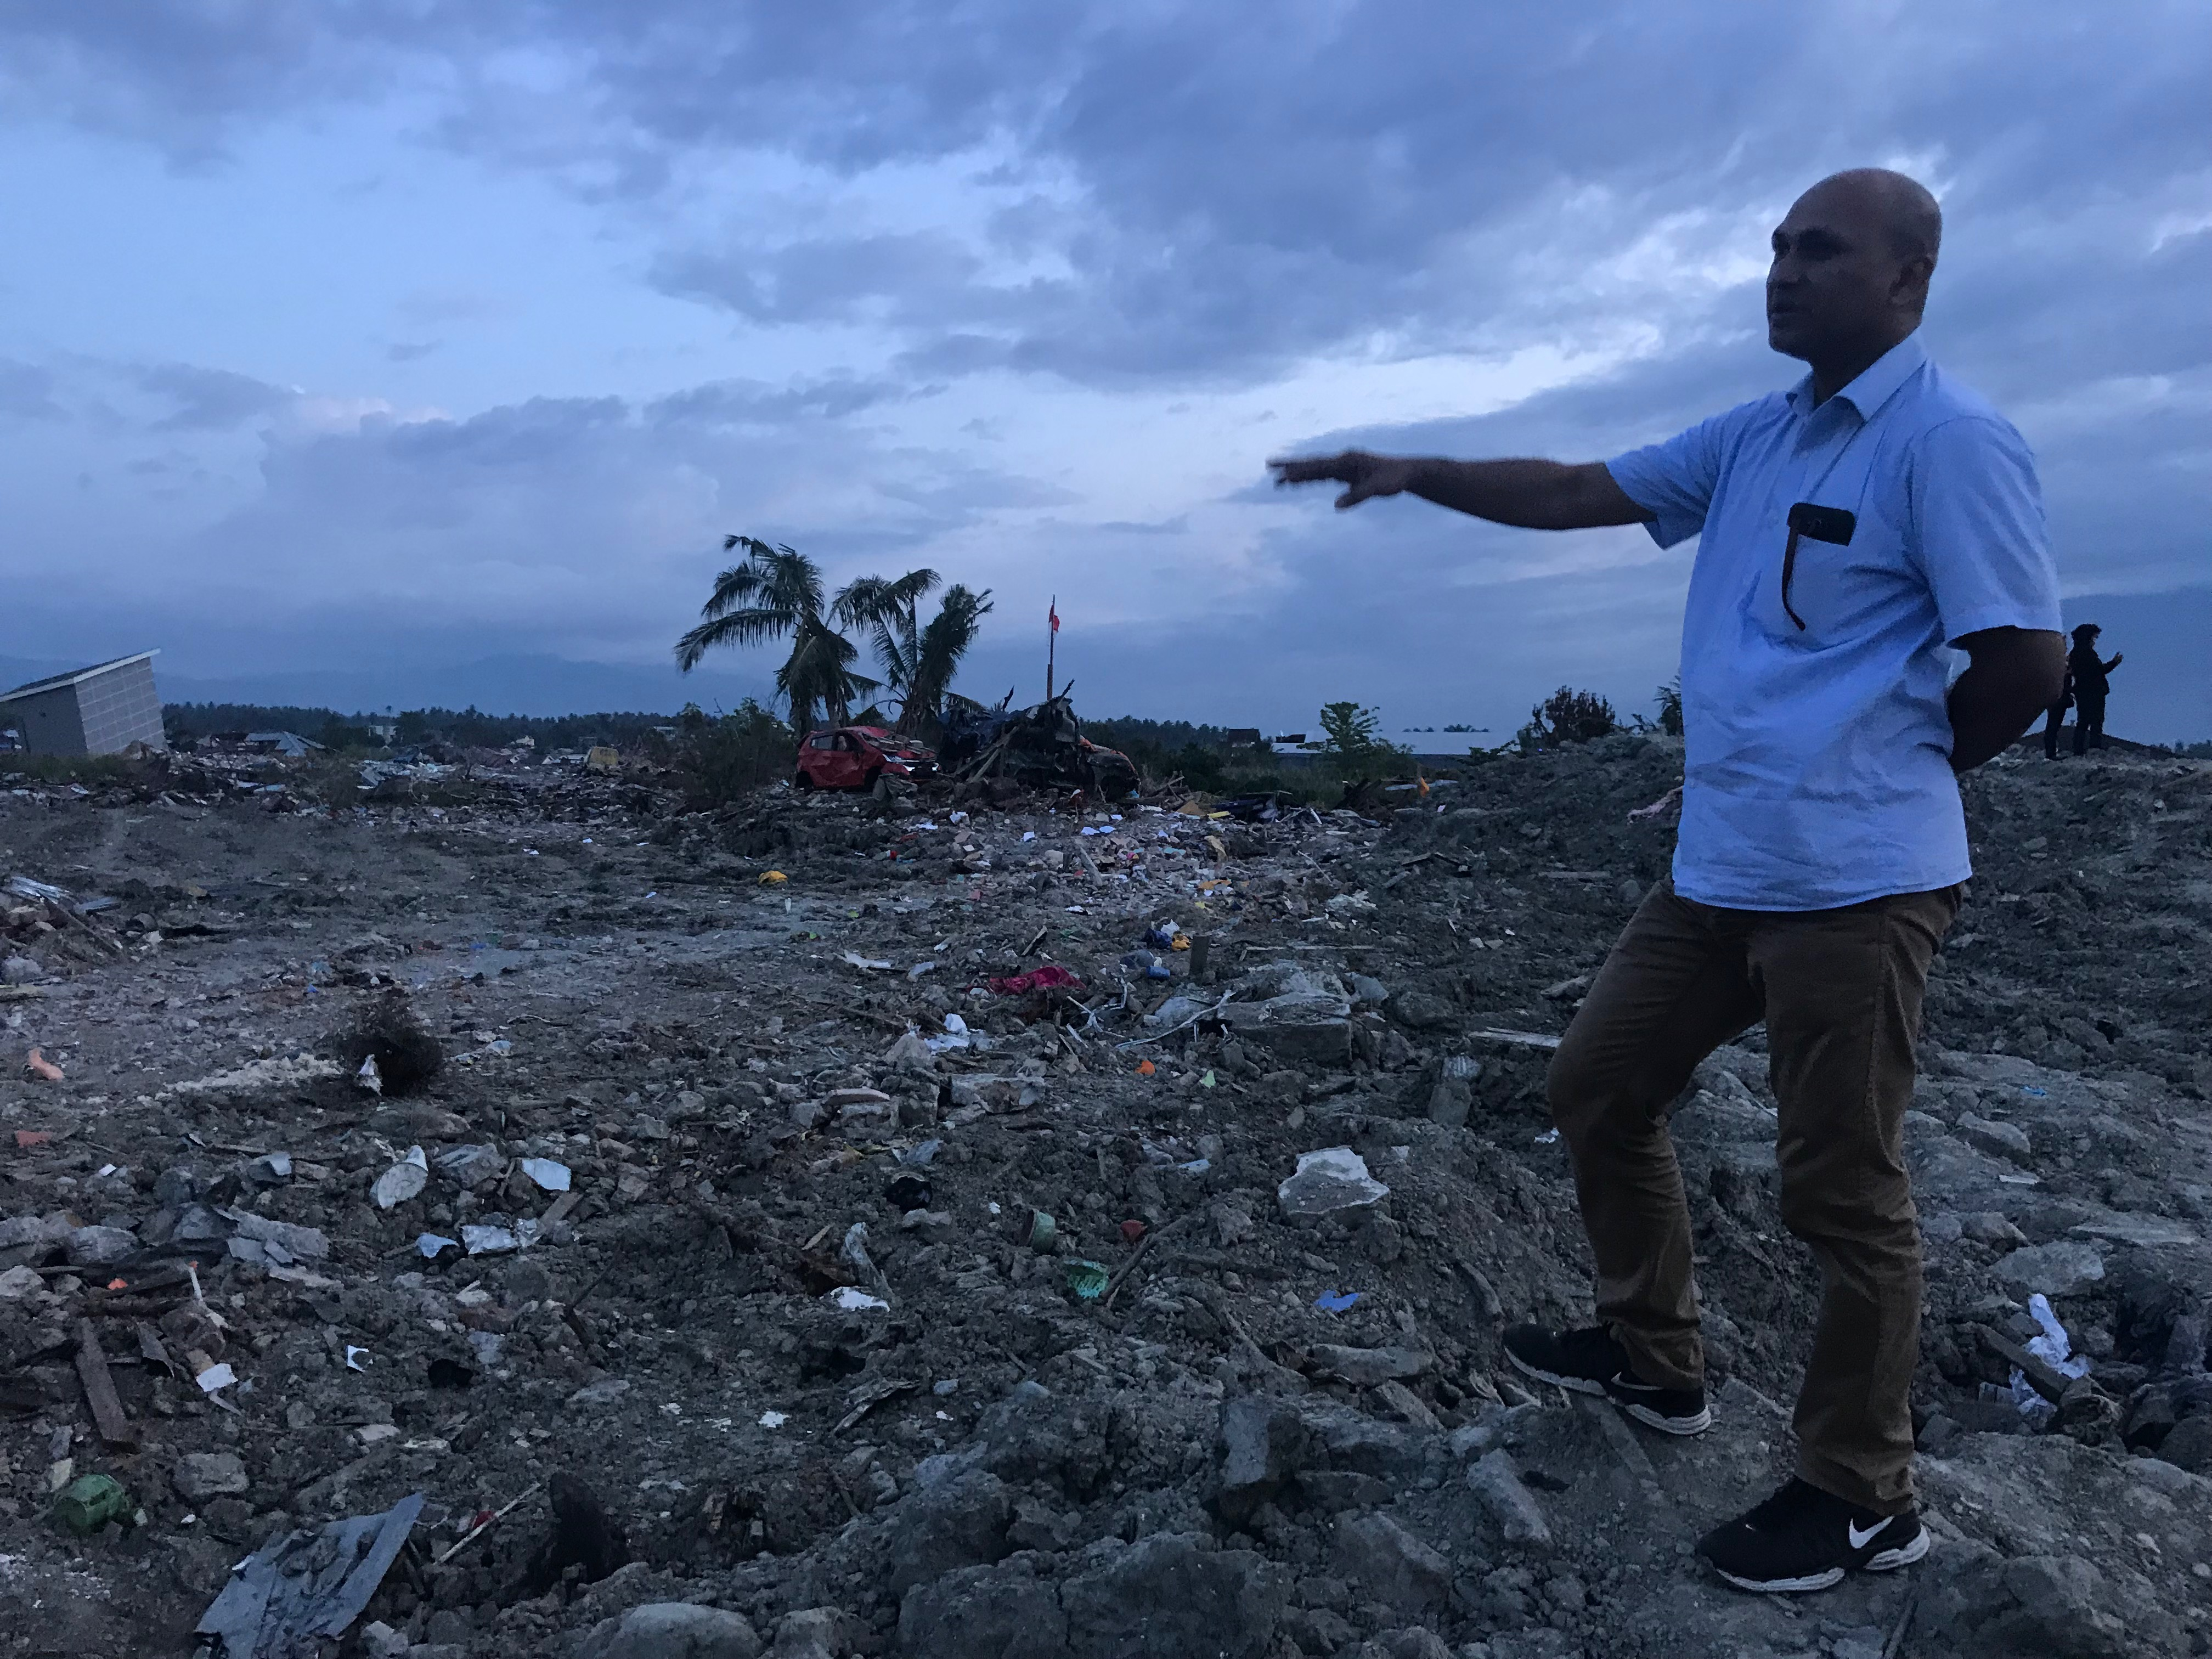 RELIEF EFFORTS: Sanjeev Bhanja looks at the damage caused by a devastating earthquake in Indonesia